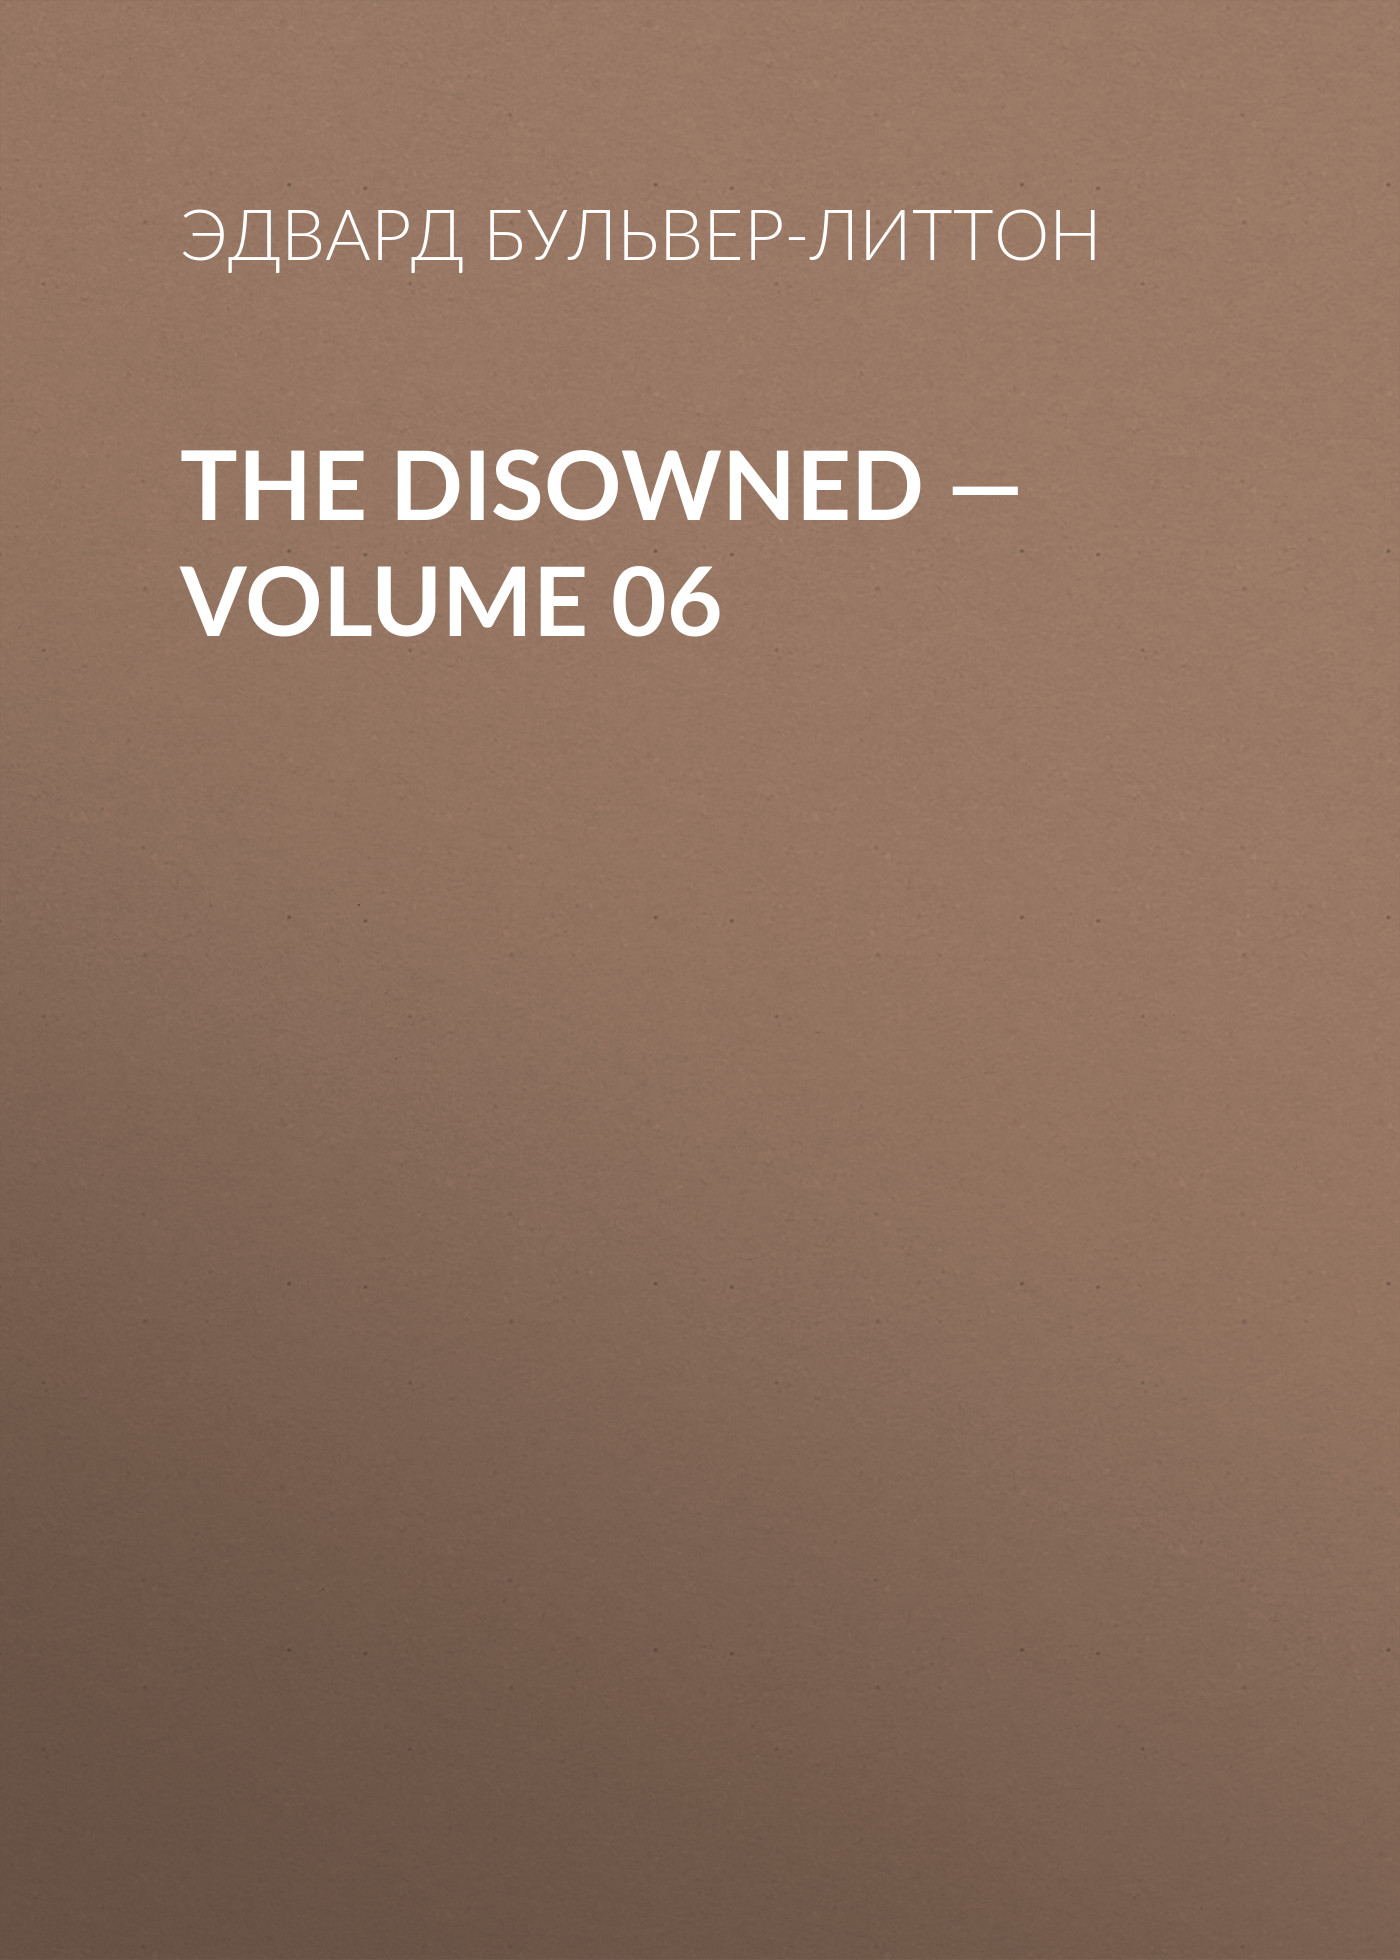 цены на Эдвард Бульвер-Литтон The Disowned — Volume 06  в интернет-магазинах